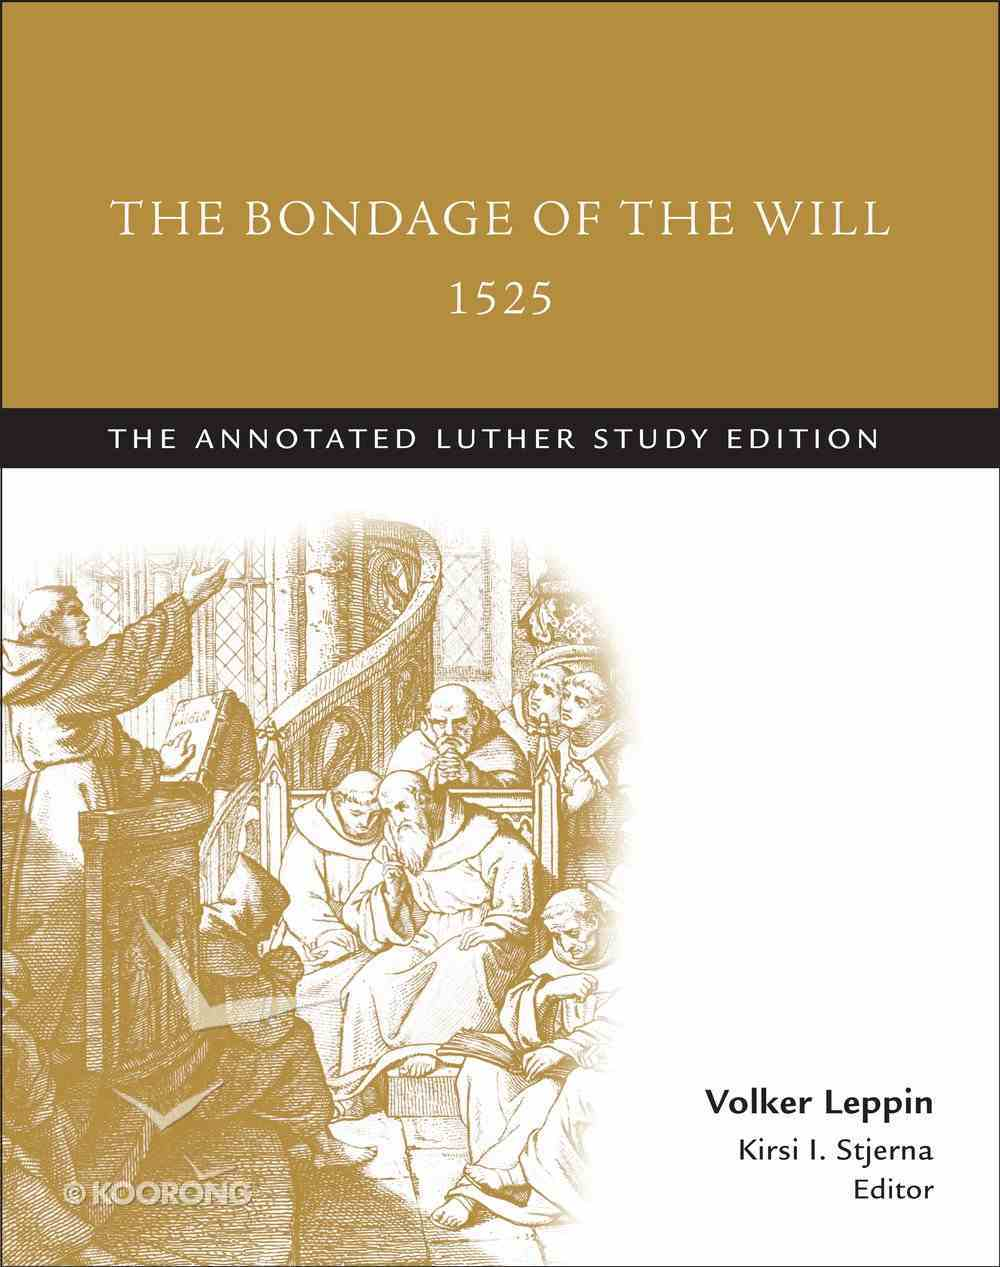 The Bondage of the Will 1525 (Study Edition) (The Annotated Luther Series) Paperback